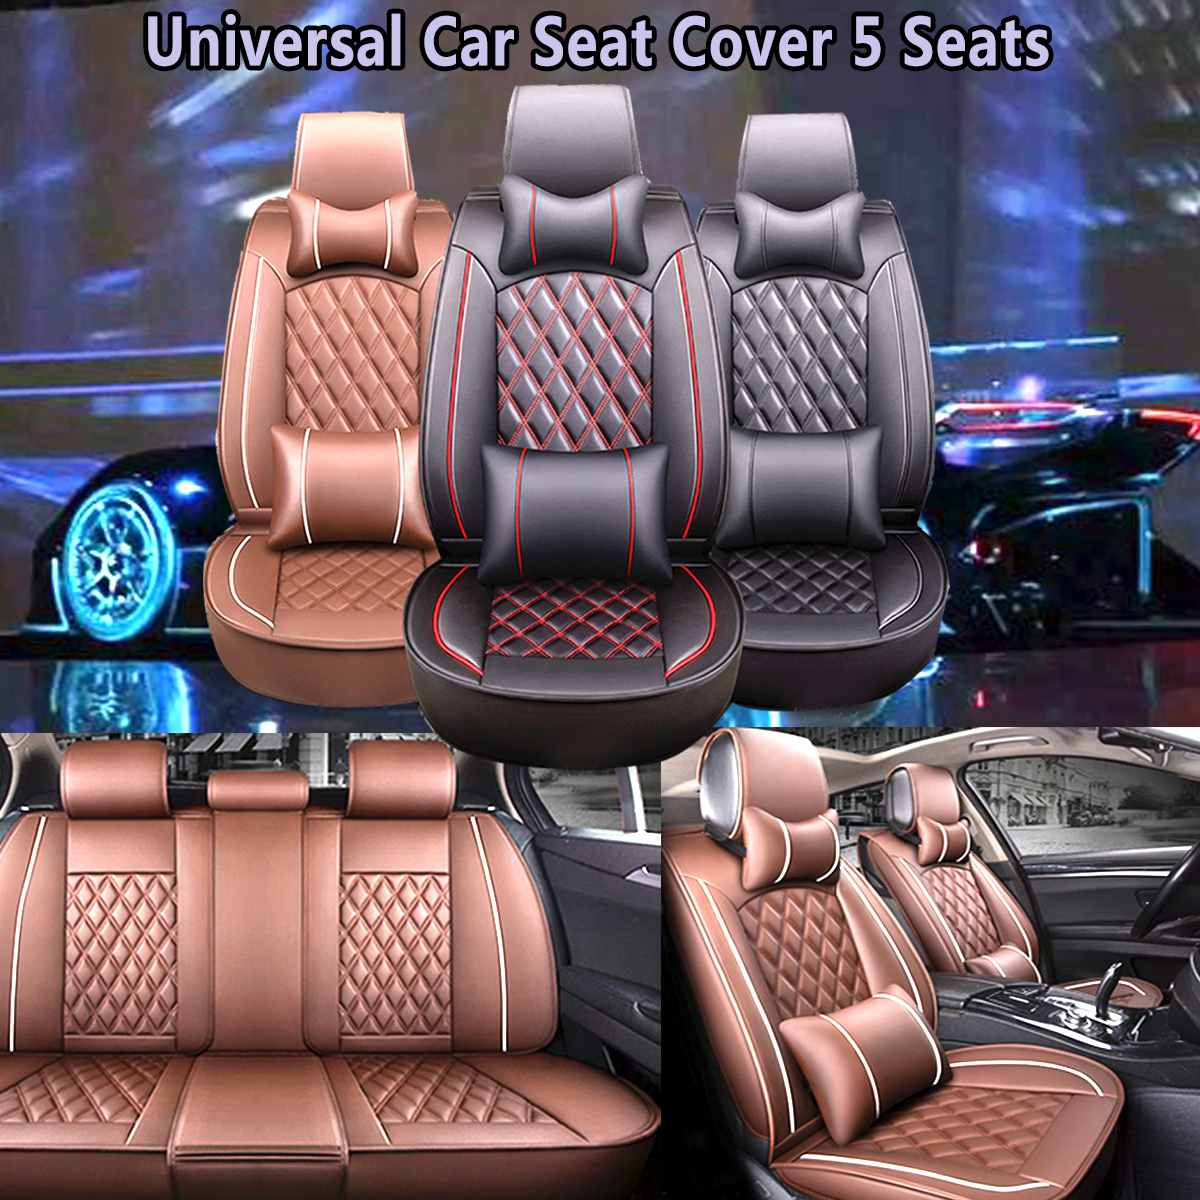 Universal Car Seat Covers Leather Cotton Seat Cushion Protection Front Rear For Honda/VW/ToyotaUniversal Car Seat Covers Leather Cotton Seat Cushion Protection Front Rear For Honda/VW/Toyota